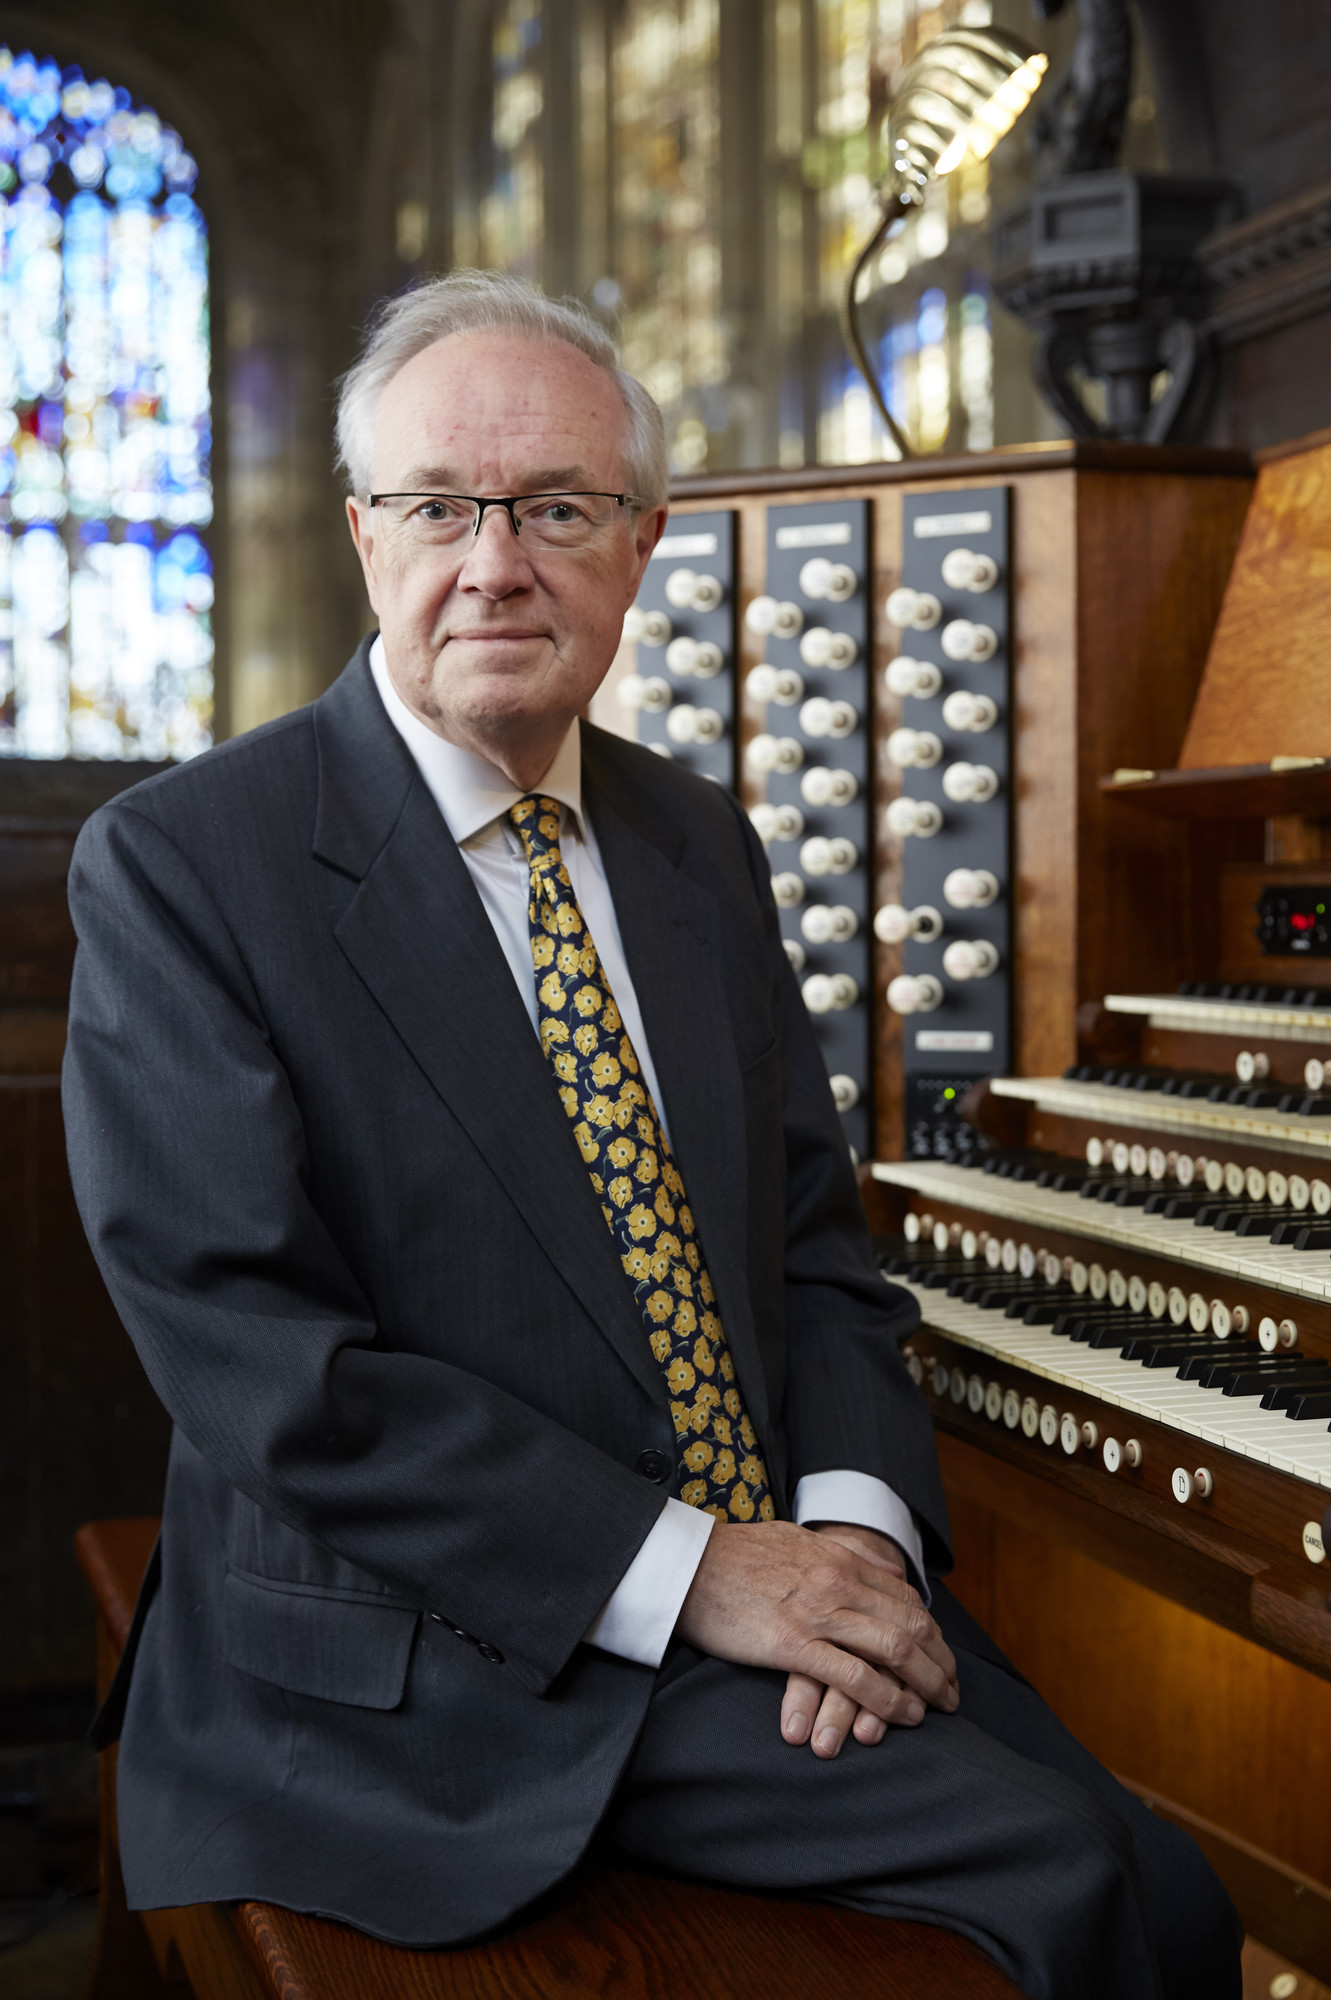 Stephen Cleobury at the King's Chapel organ console